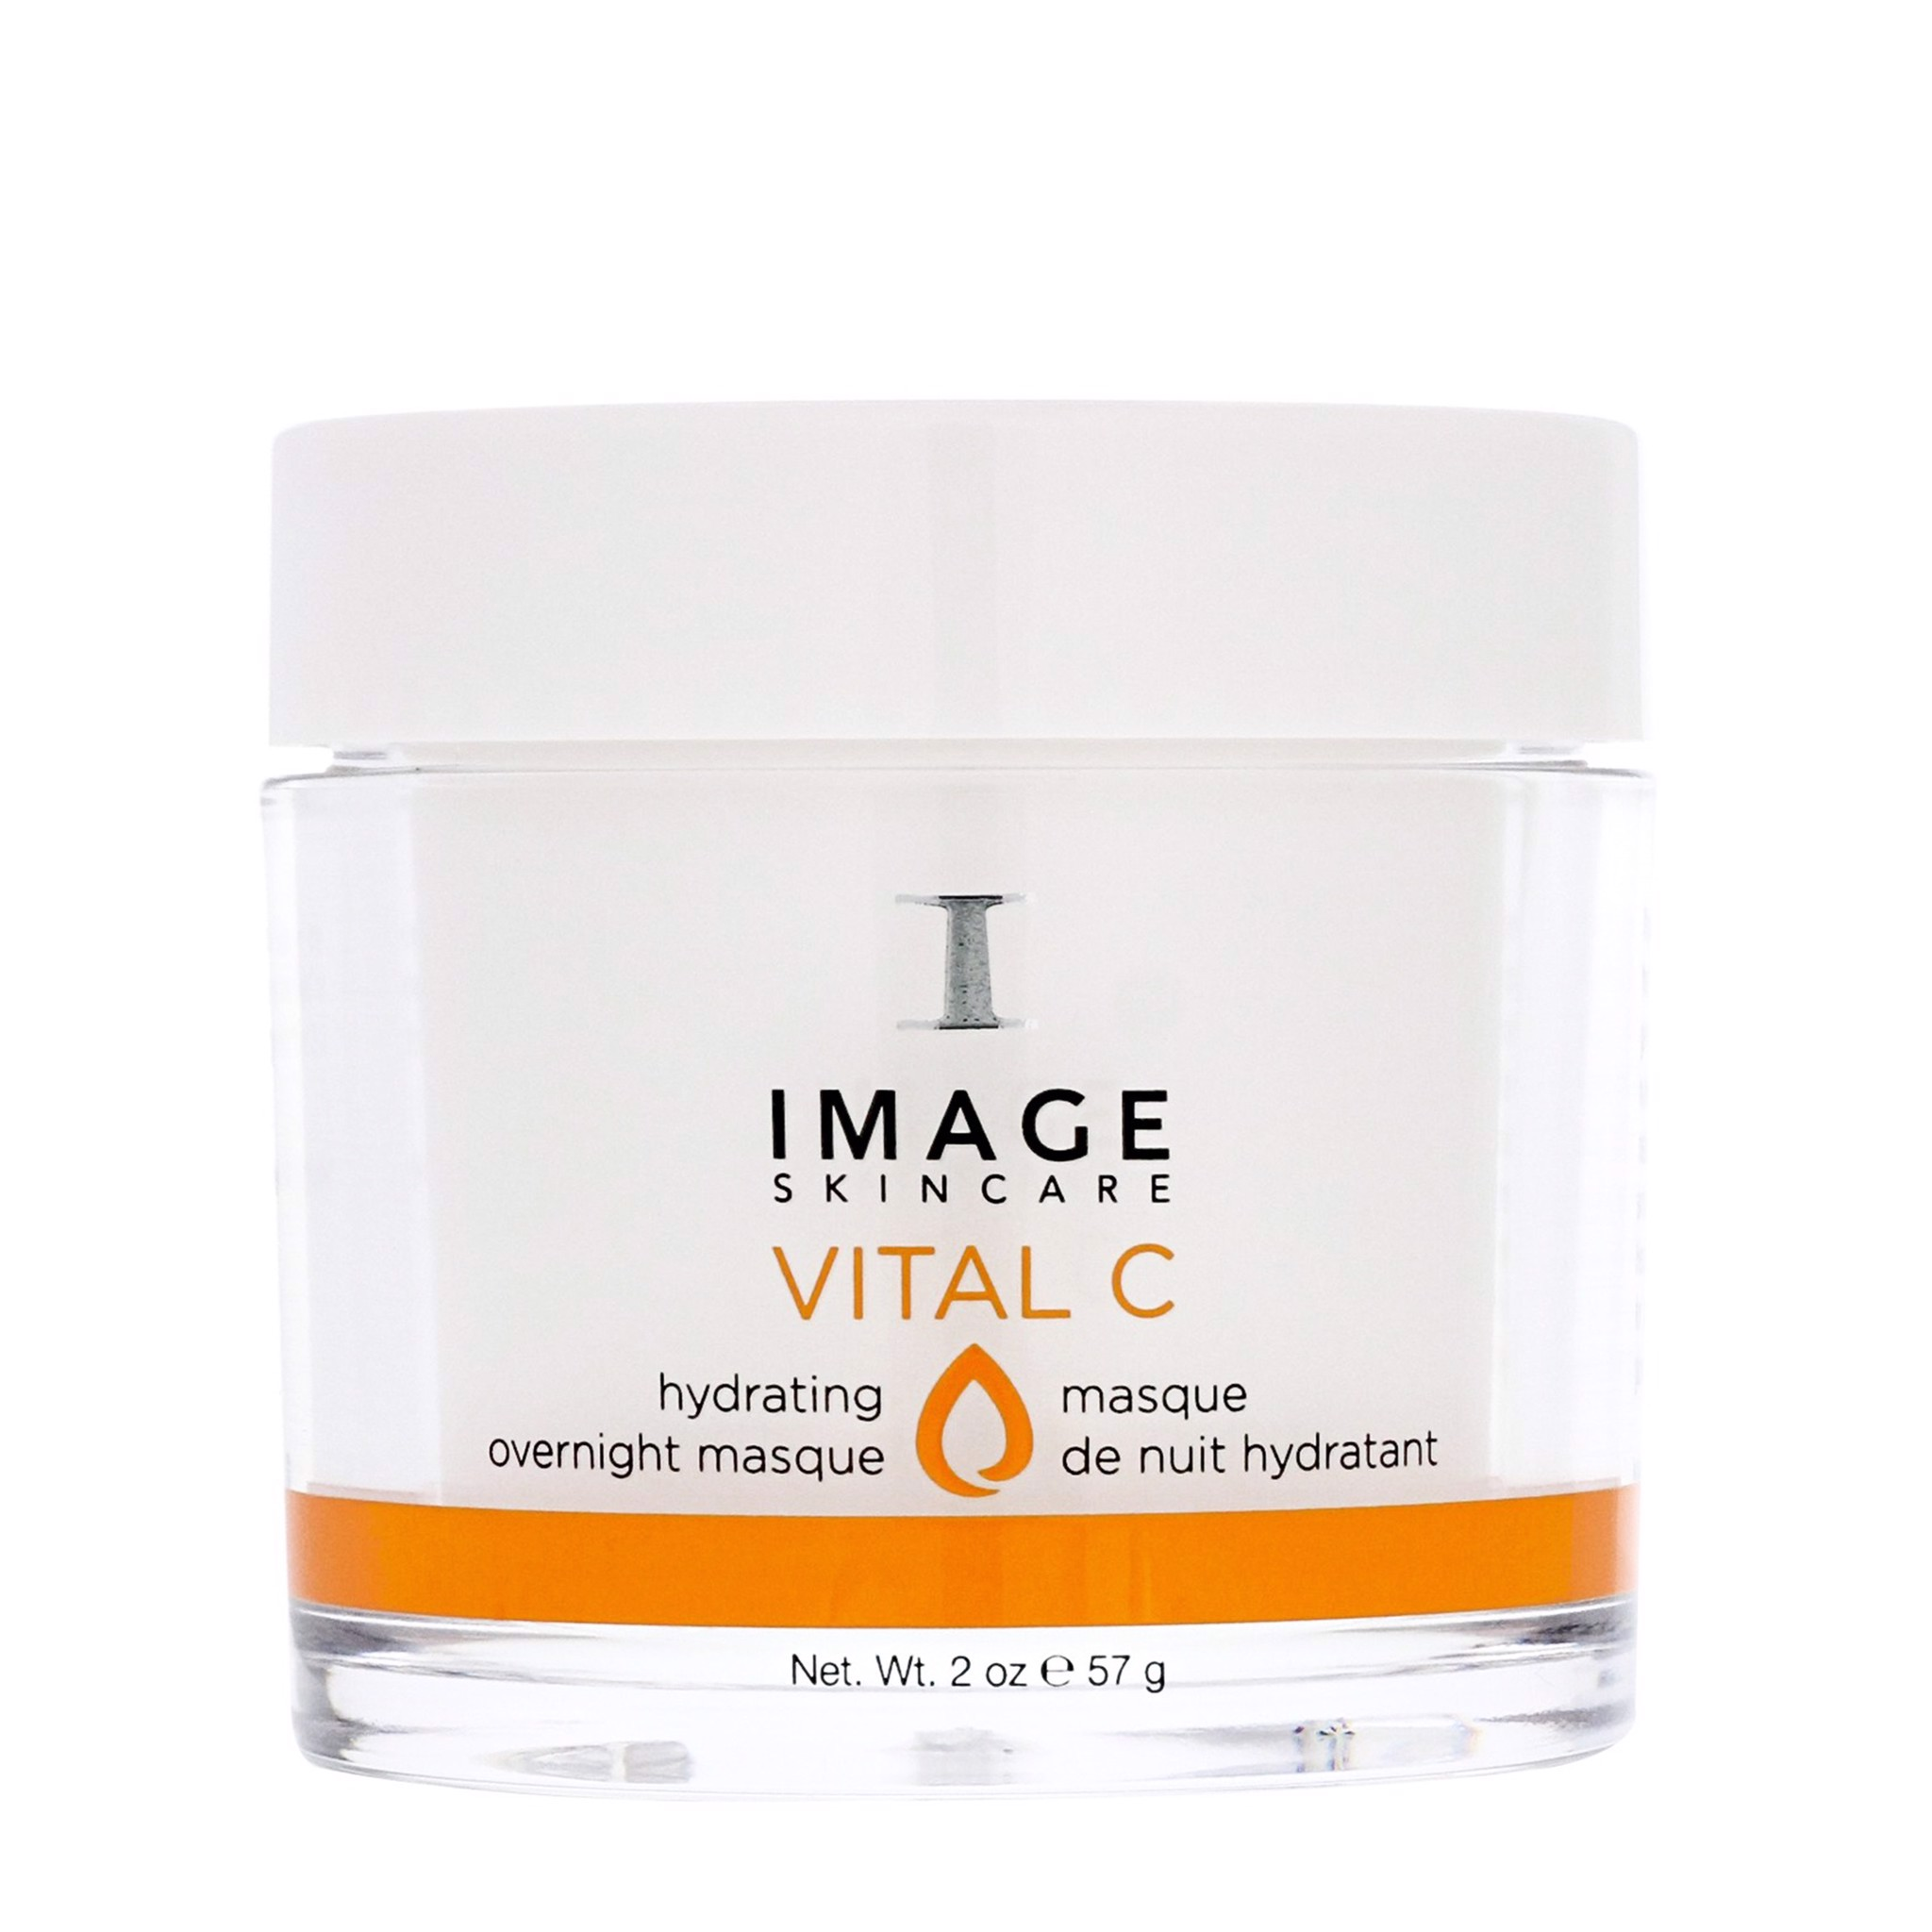 Mặt nạ ngủ cấp ẩm cho da IMAGE SKINCARE Vital C Hydrating Overnight Masque (57g)